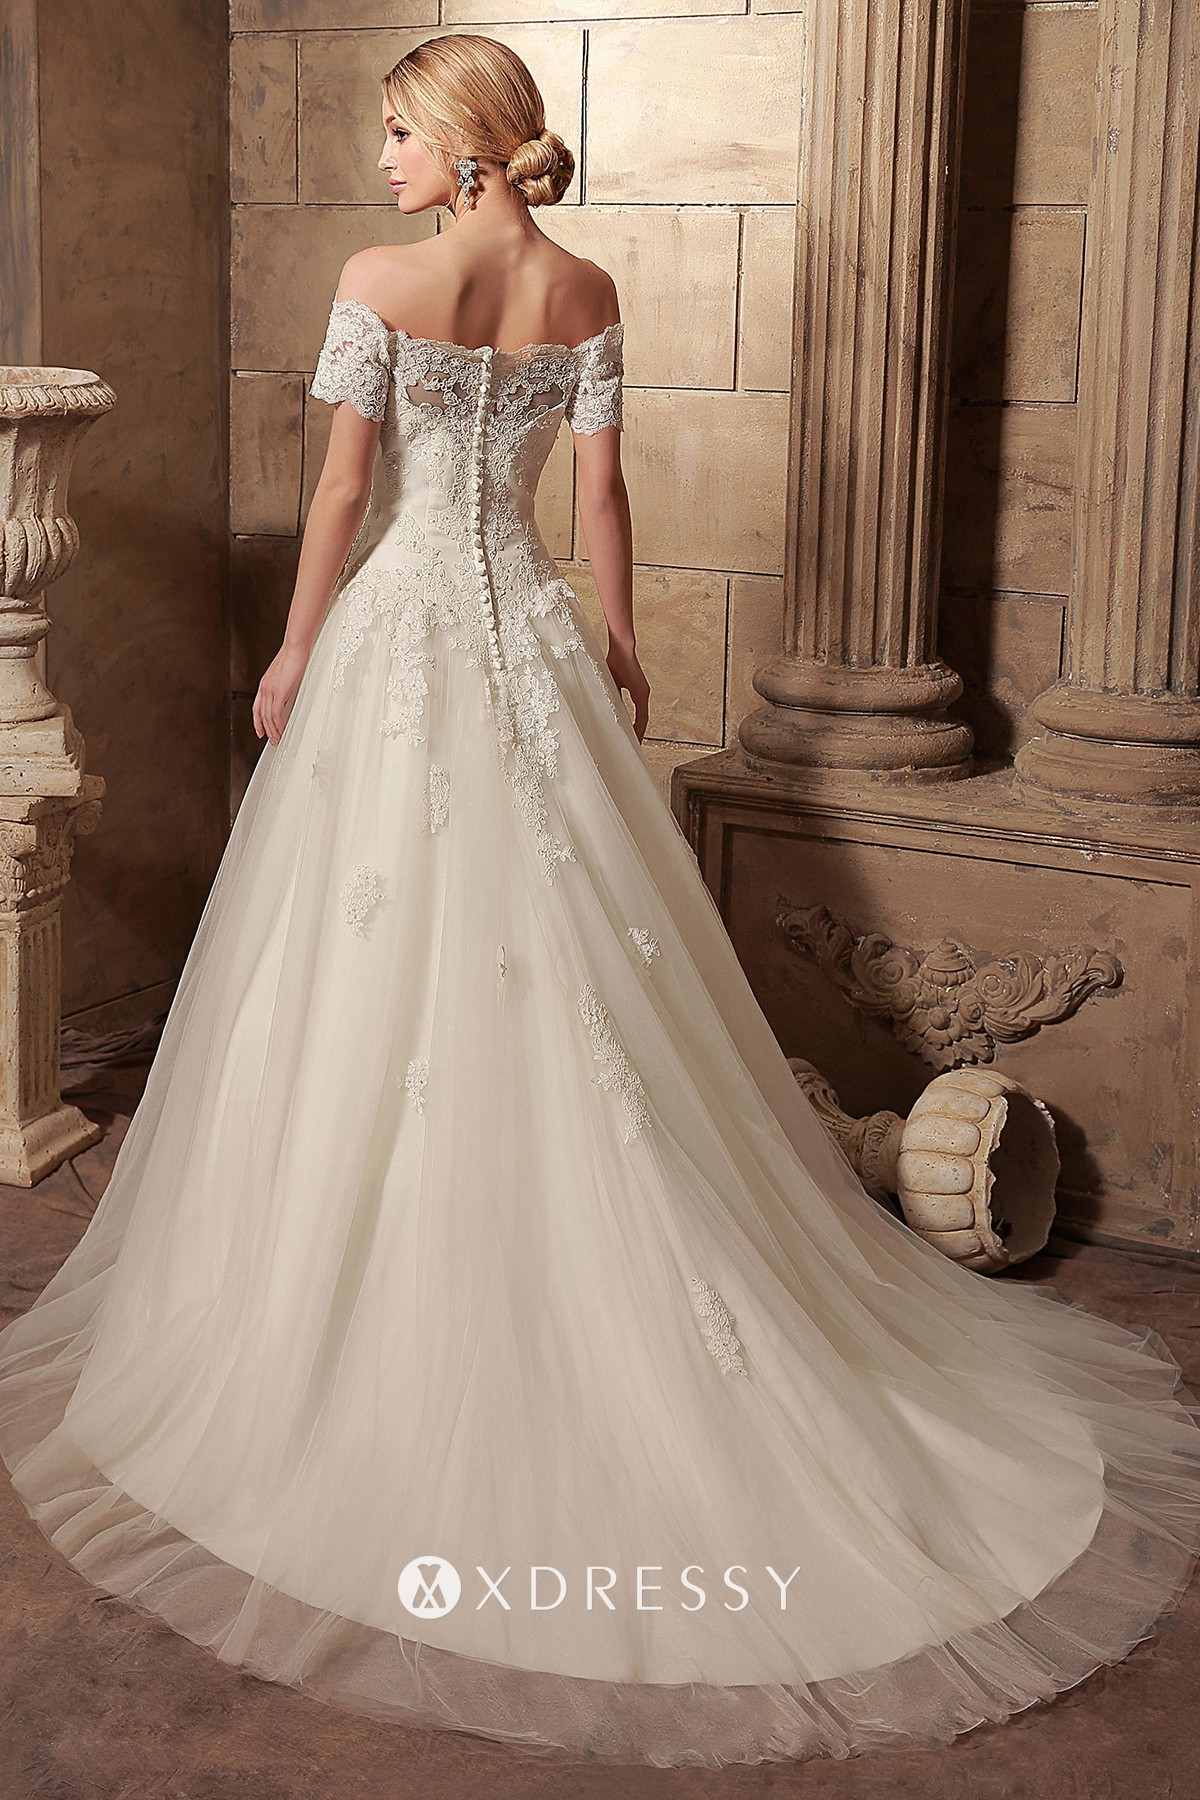 Scalloped Off Shoulder Lace Appliqued Wedding Gown Xdressy